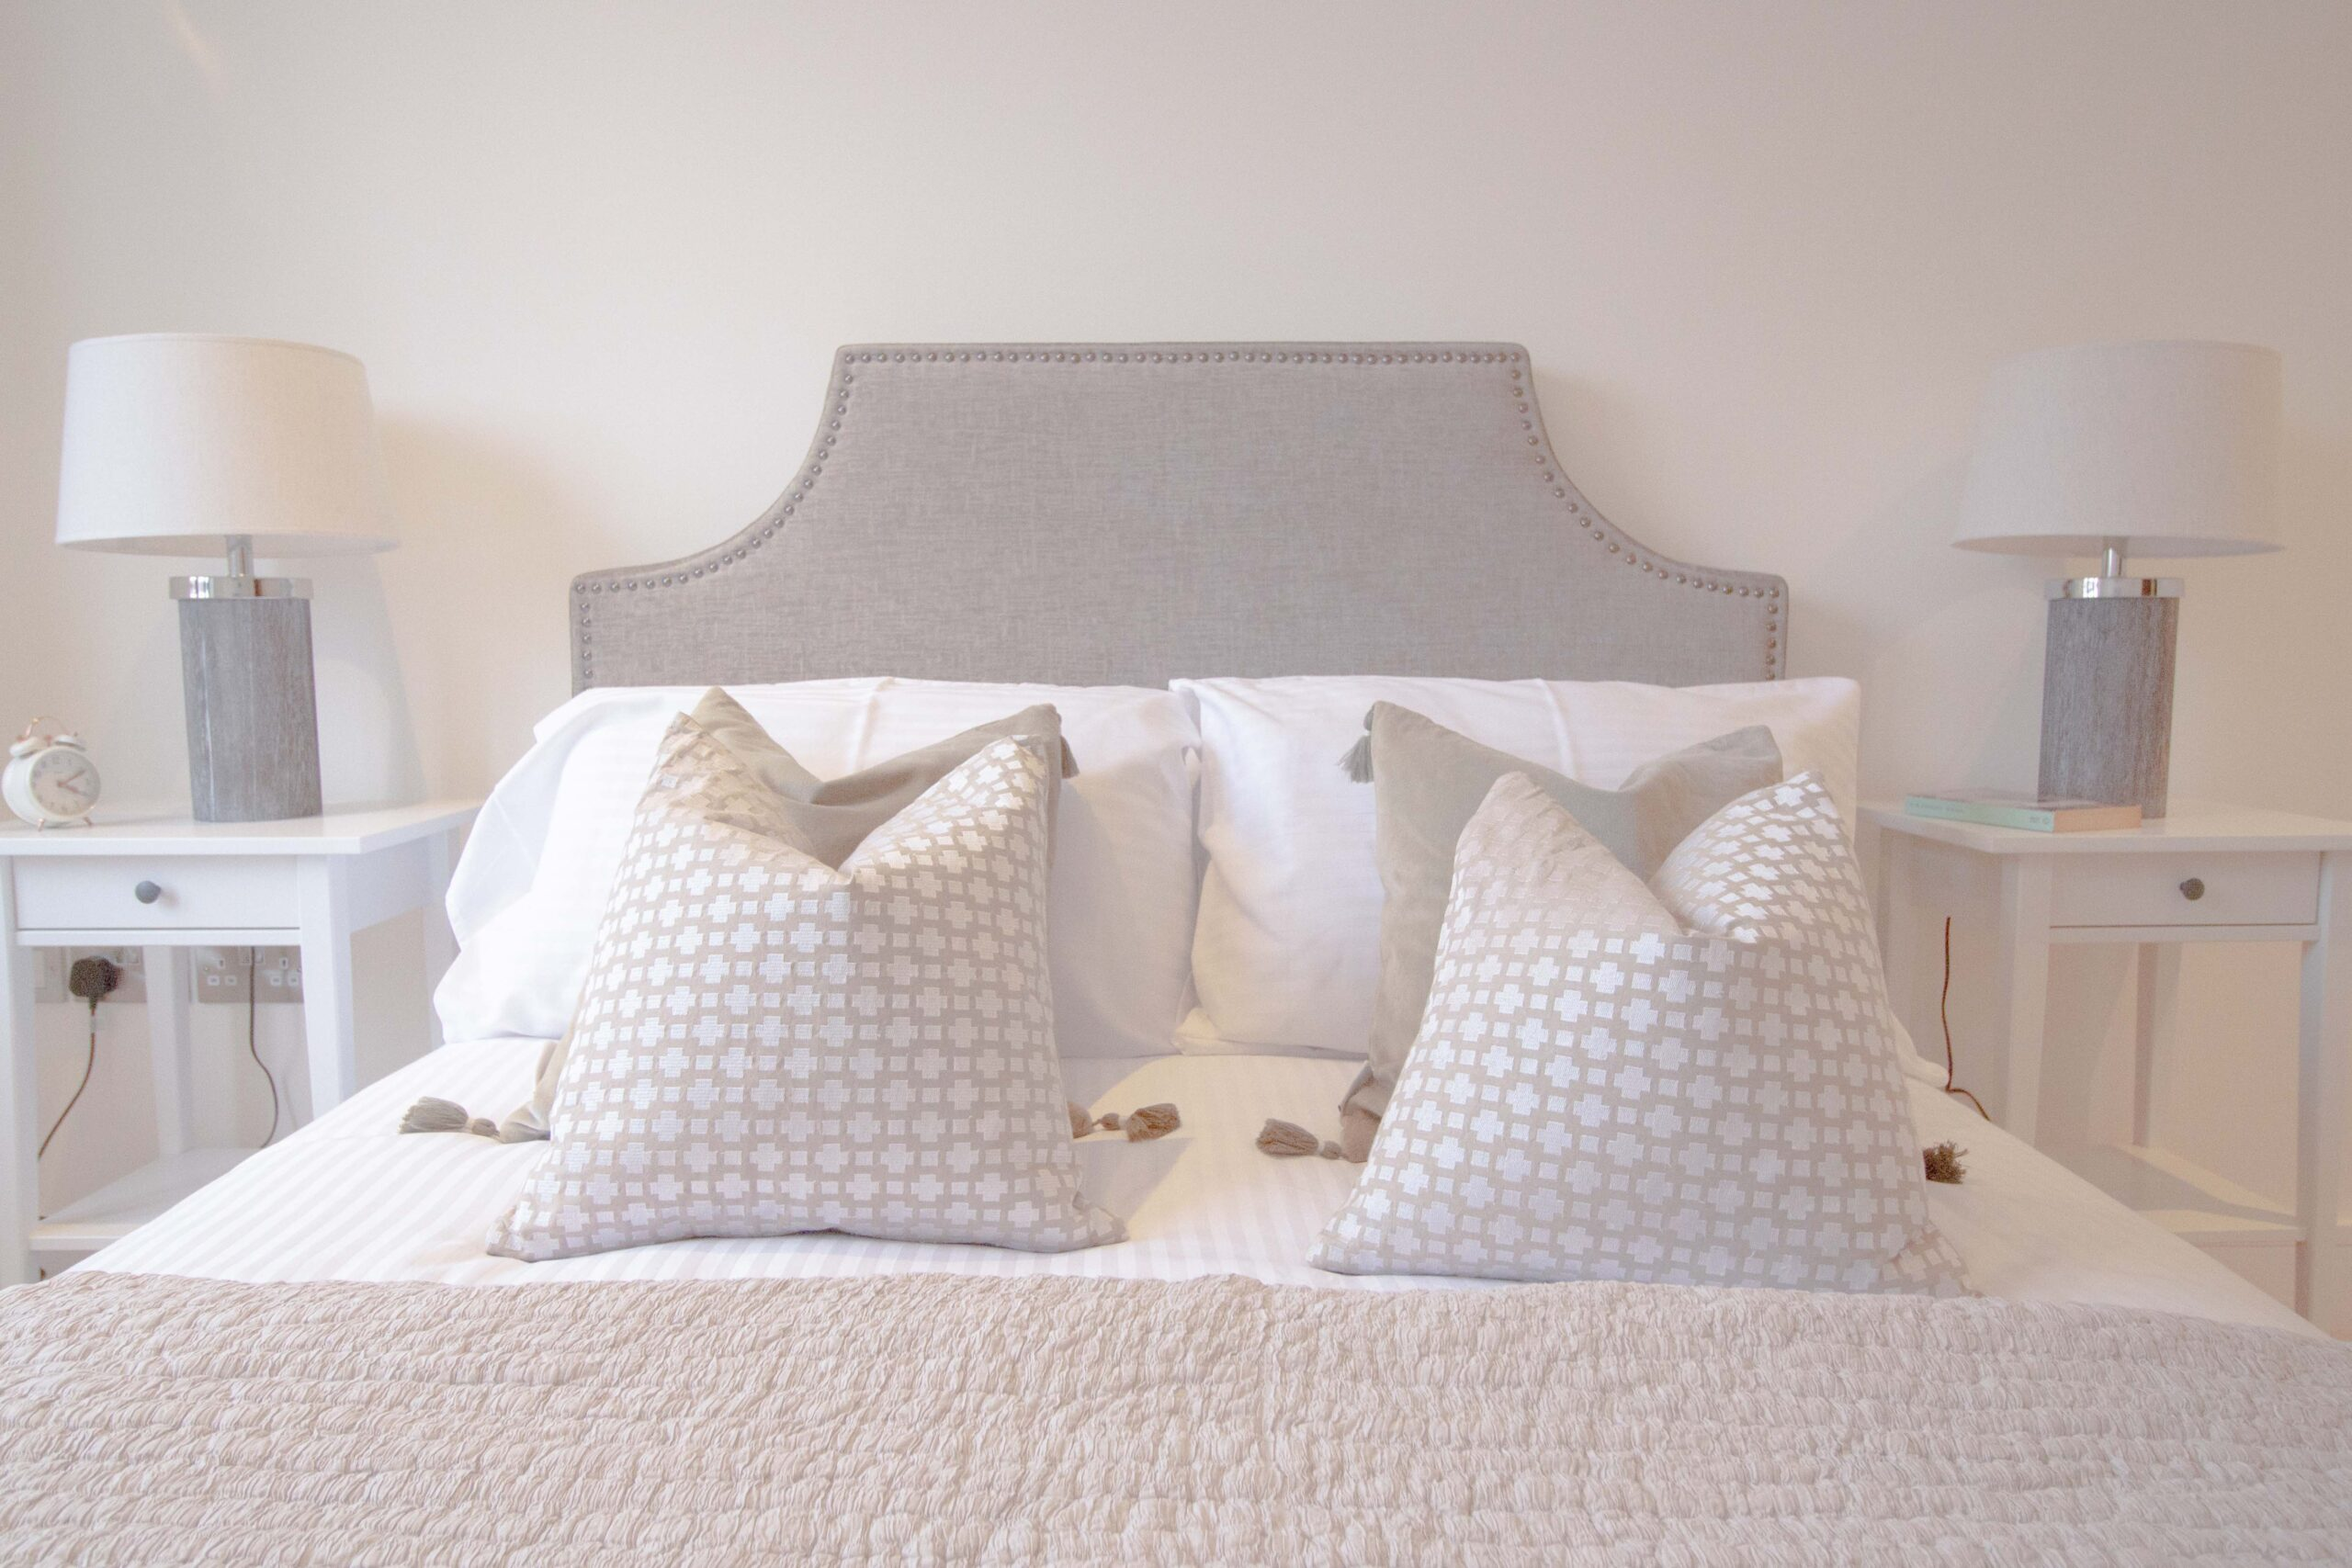 Bed with cushions and throw